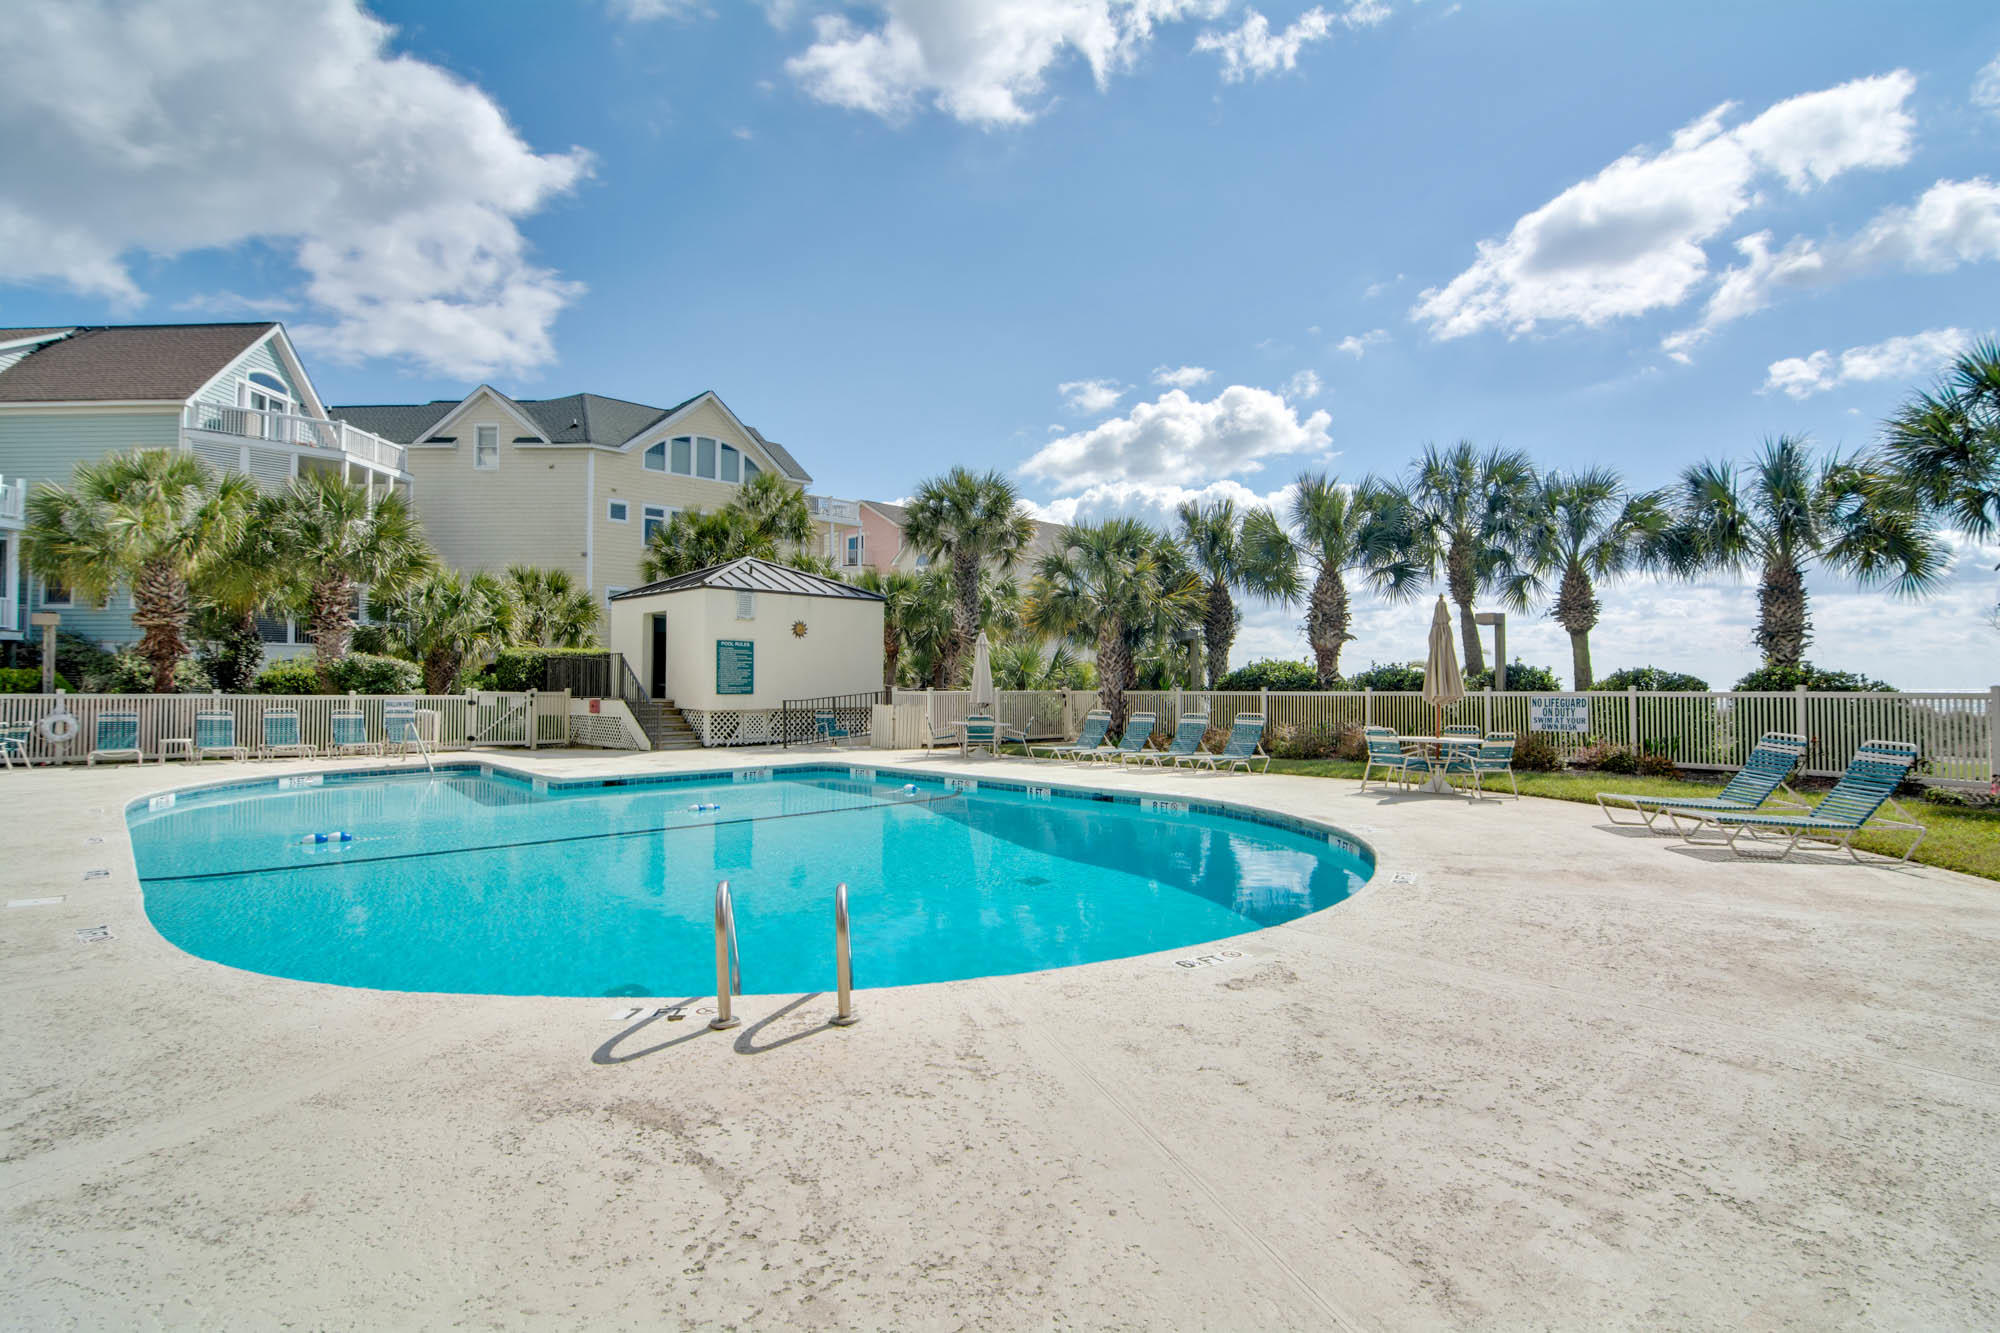 Wild Dunes Homes For Sale - 210 Summerhouse, Isle of Palms, SC - 12